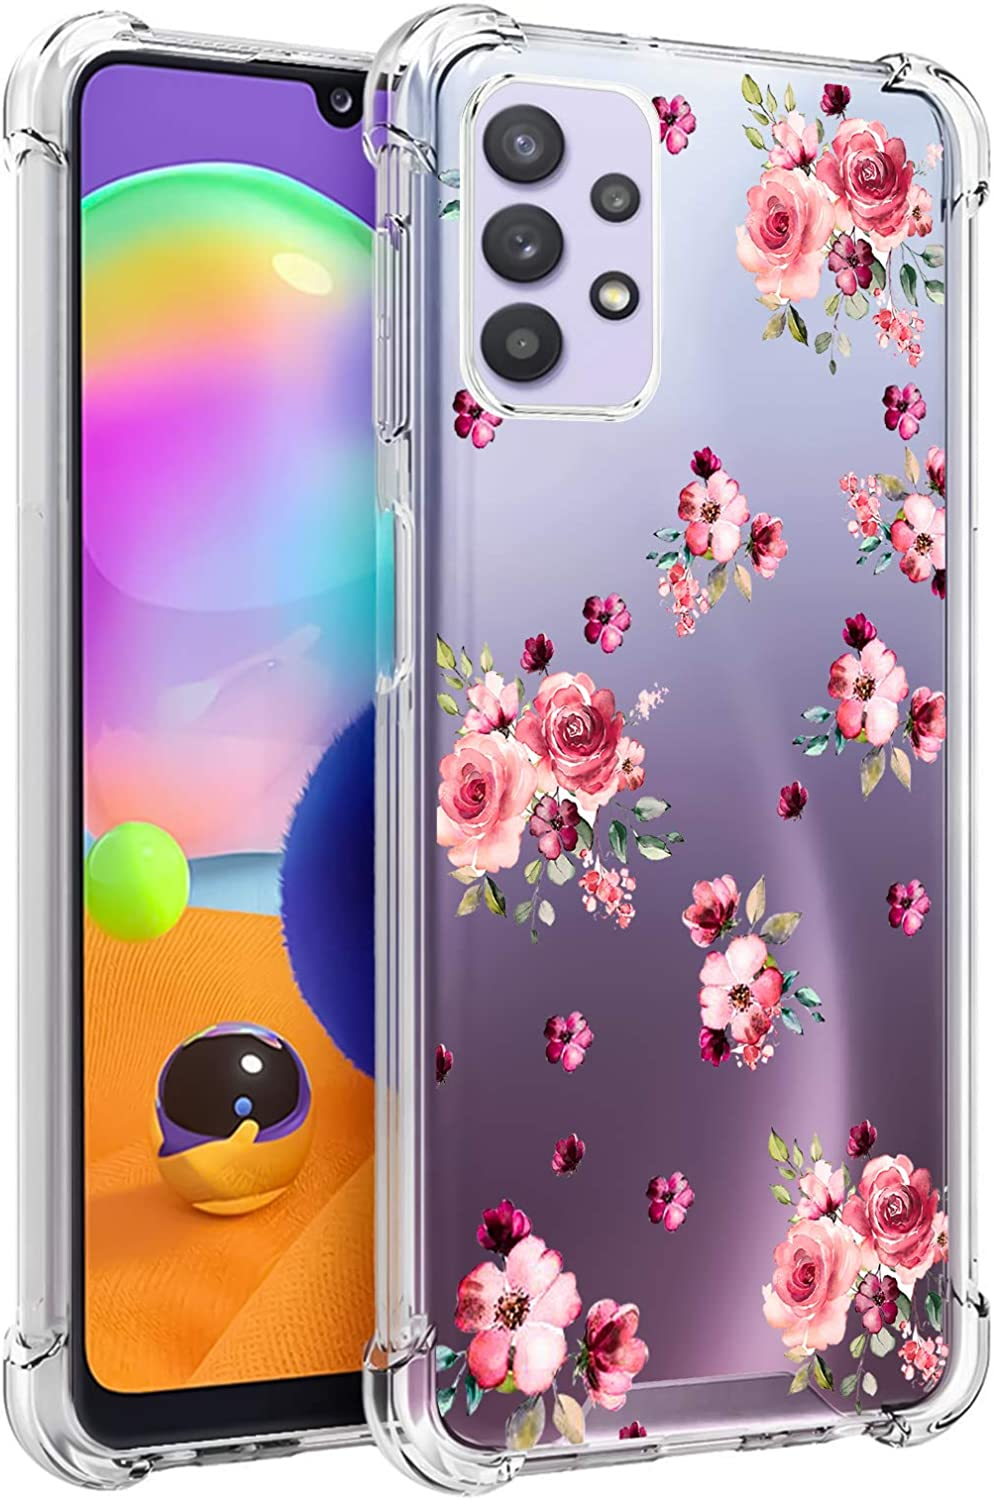 LSL Samsung Galaxy A32 5G Clear Case Pink Flowers Floral Cute Design Pattern Hard PC Back + Soft TPU Edges Full Body Protection Wireless Charging Cover for Galaxy A32 5G 6.5 Inch